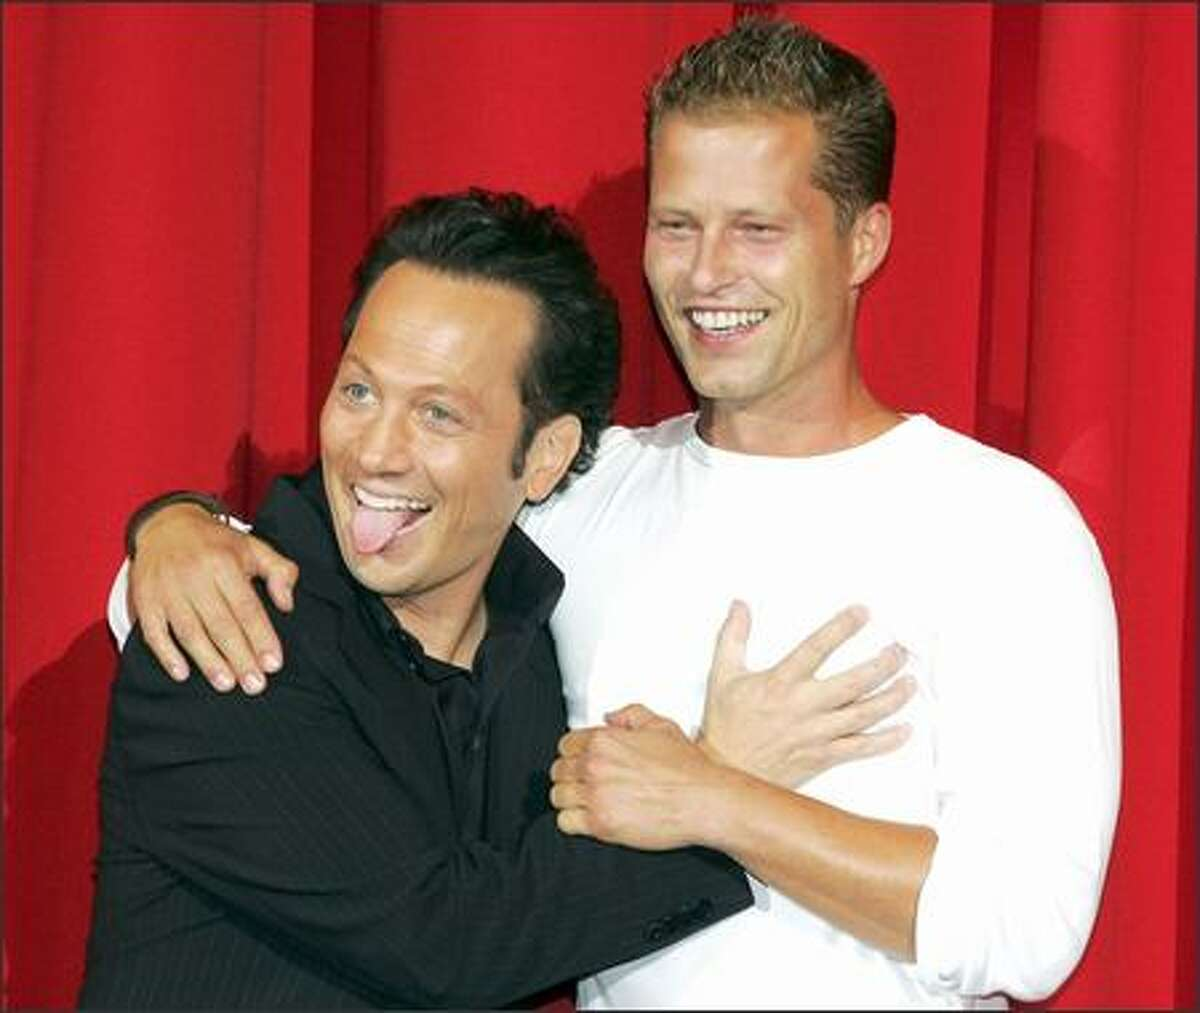 If frisky actor Rob Schneider had a tail, he'd be wagging it. He's one happy-looking pup as he clowns with hunky German actor Till Schweiger just before the German premiere of their new comic film,